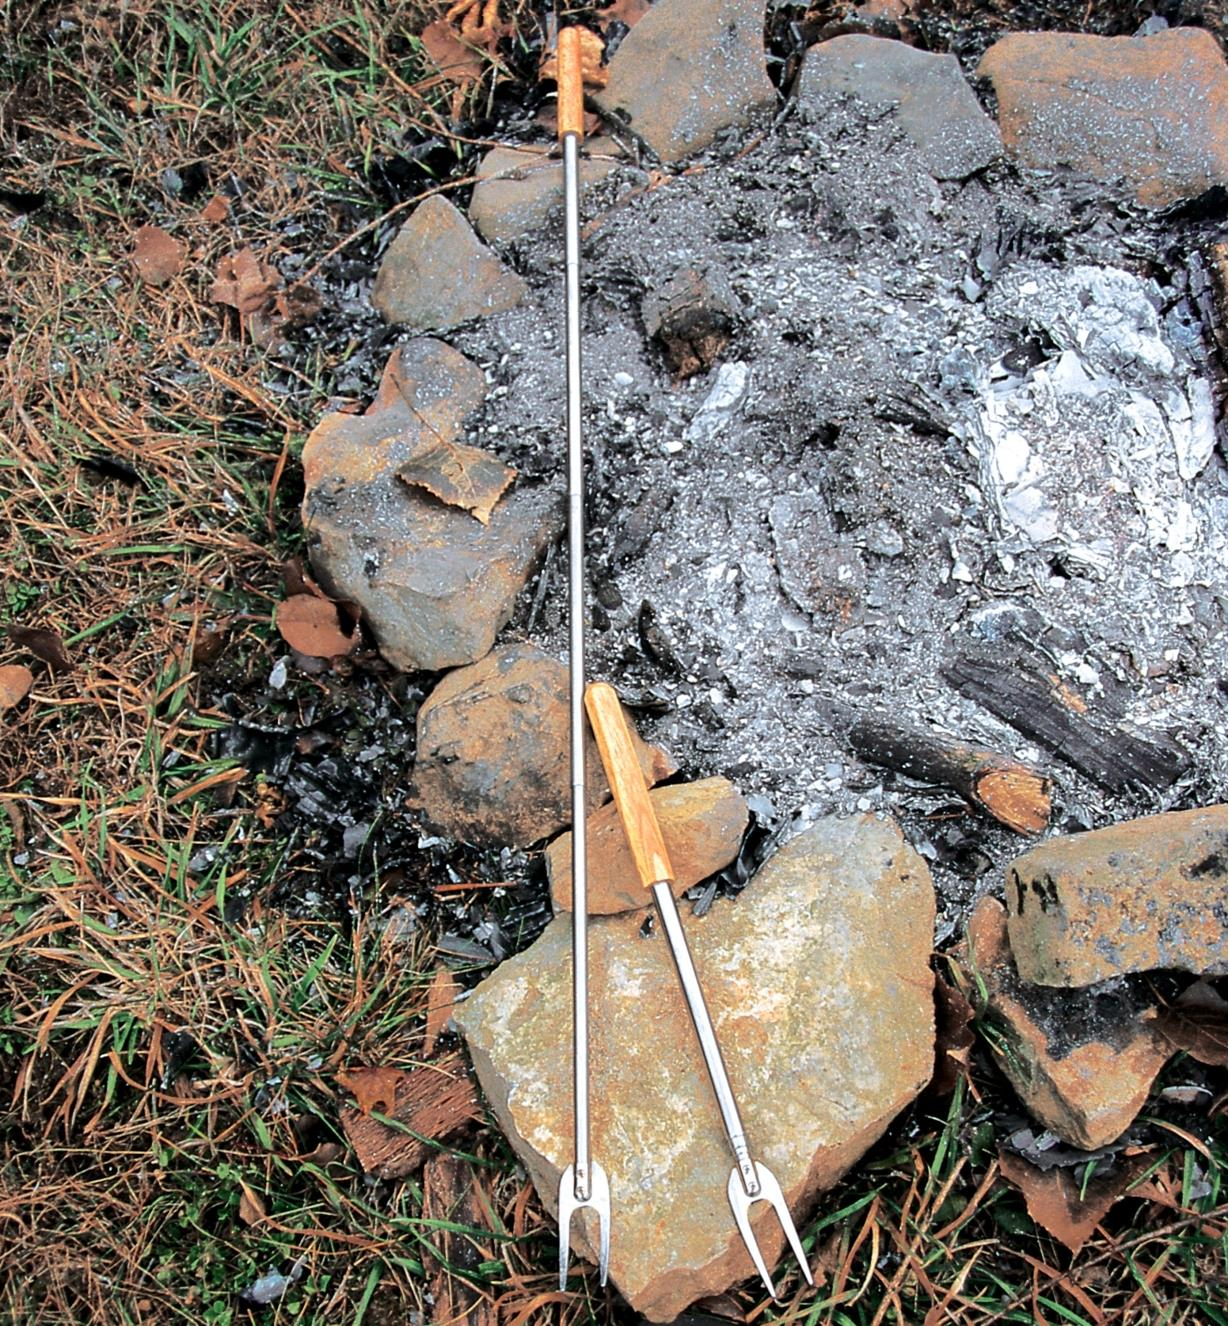 Two telescoping campfire forks, one extended to full length